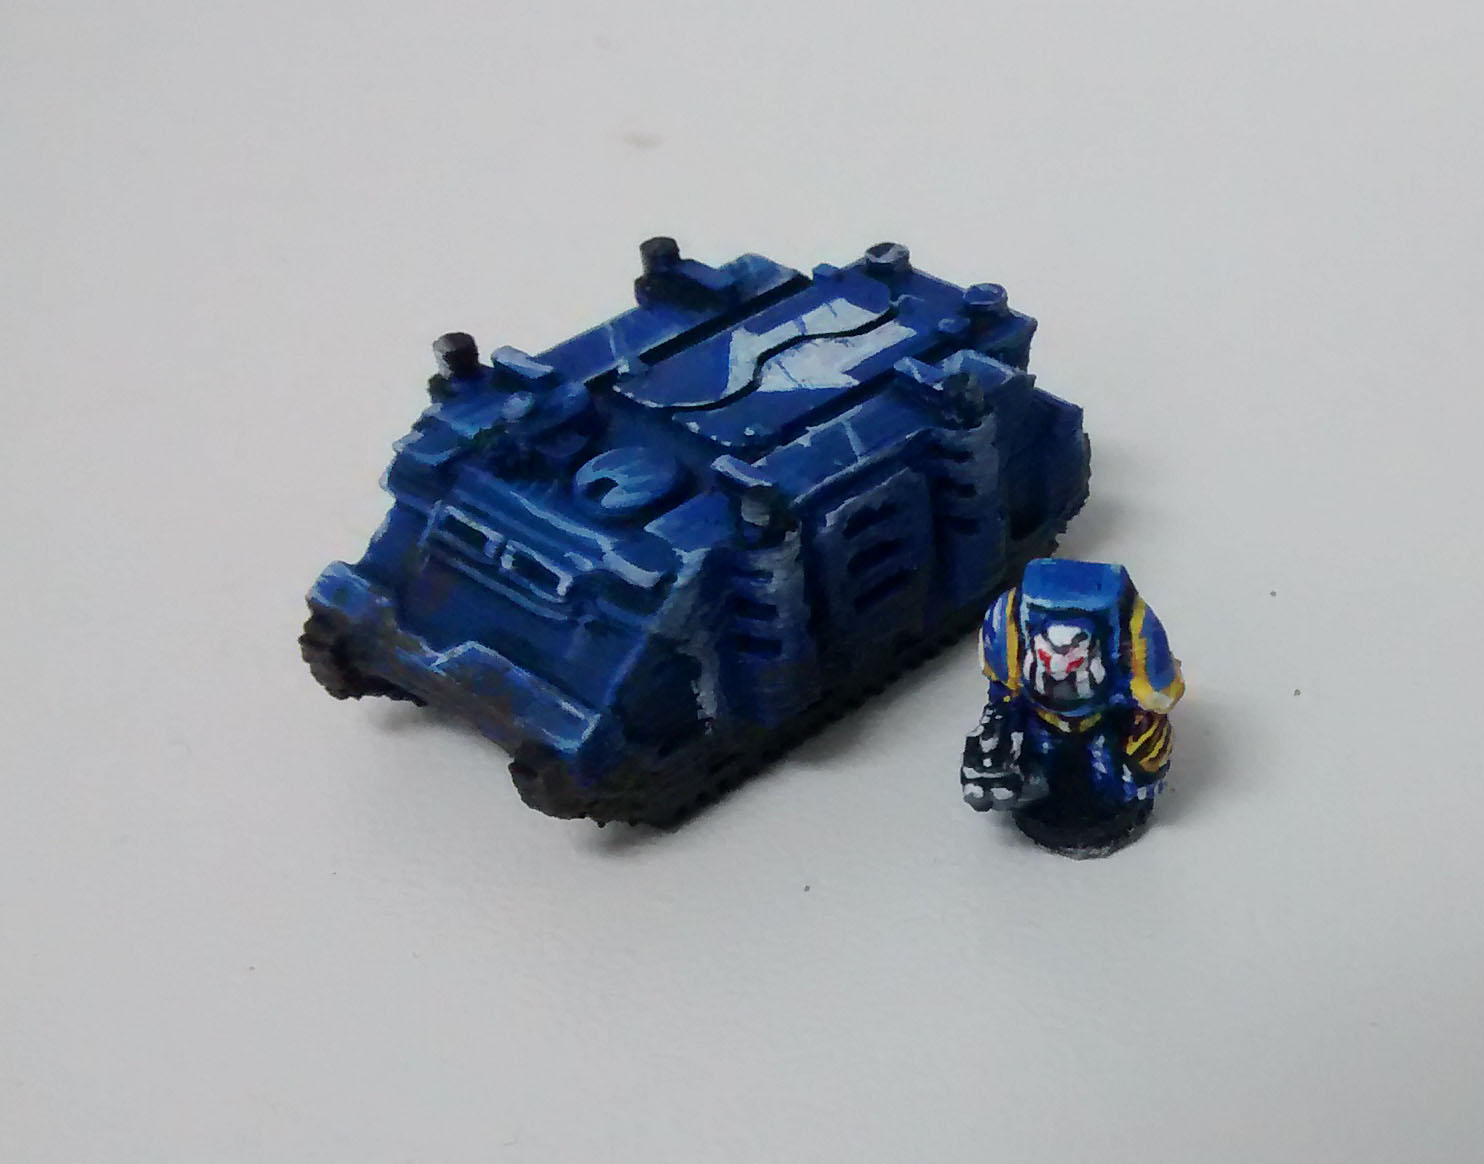 Rhino Transport Vehicle for Epic 40K (6mm scale) by jfombe